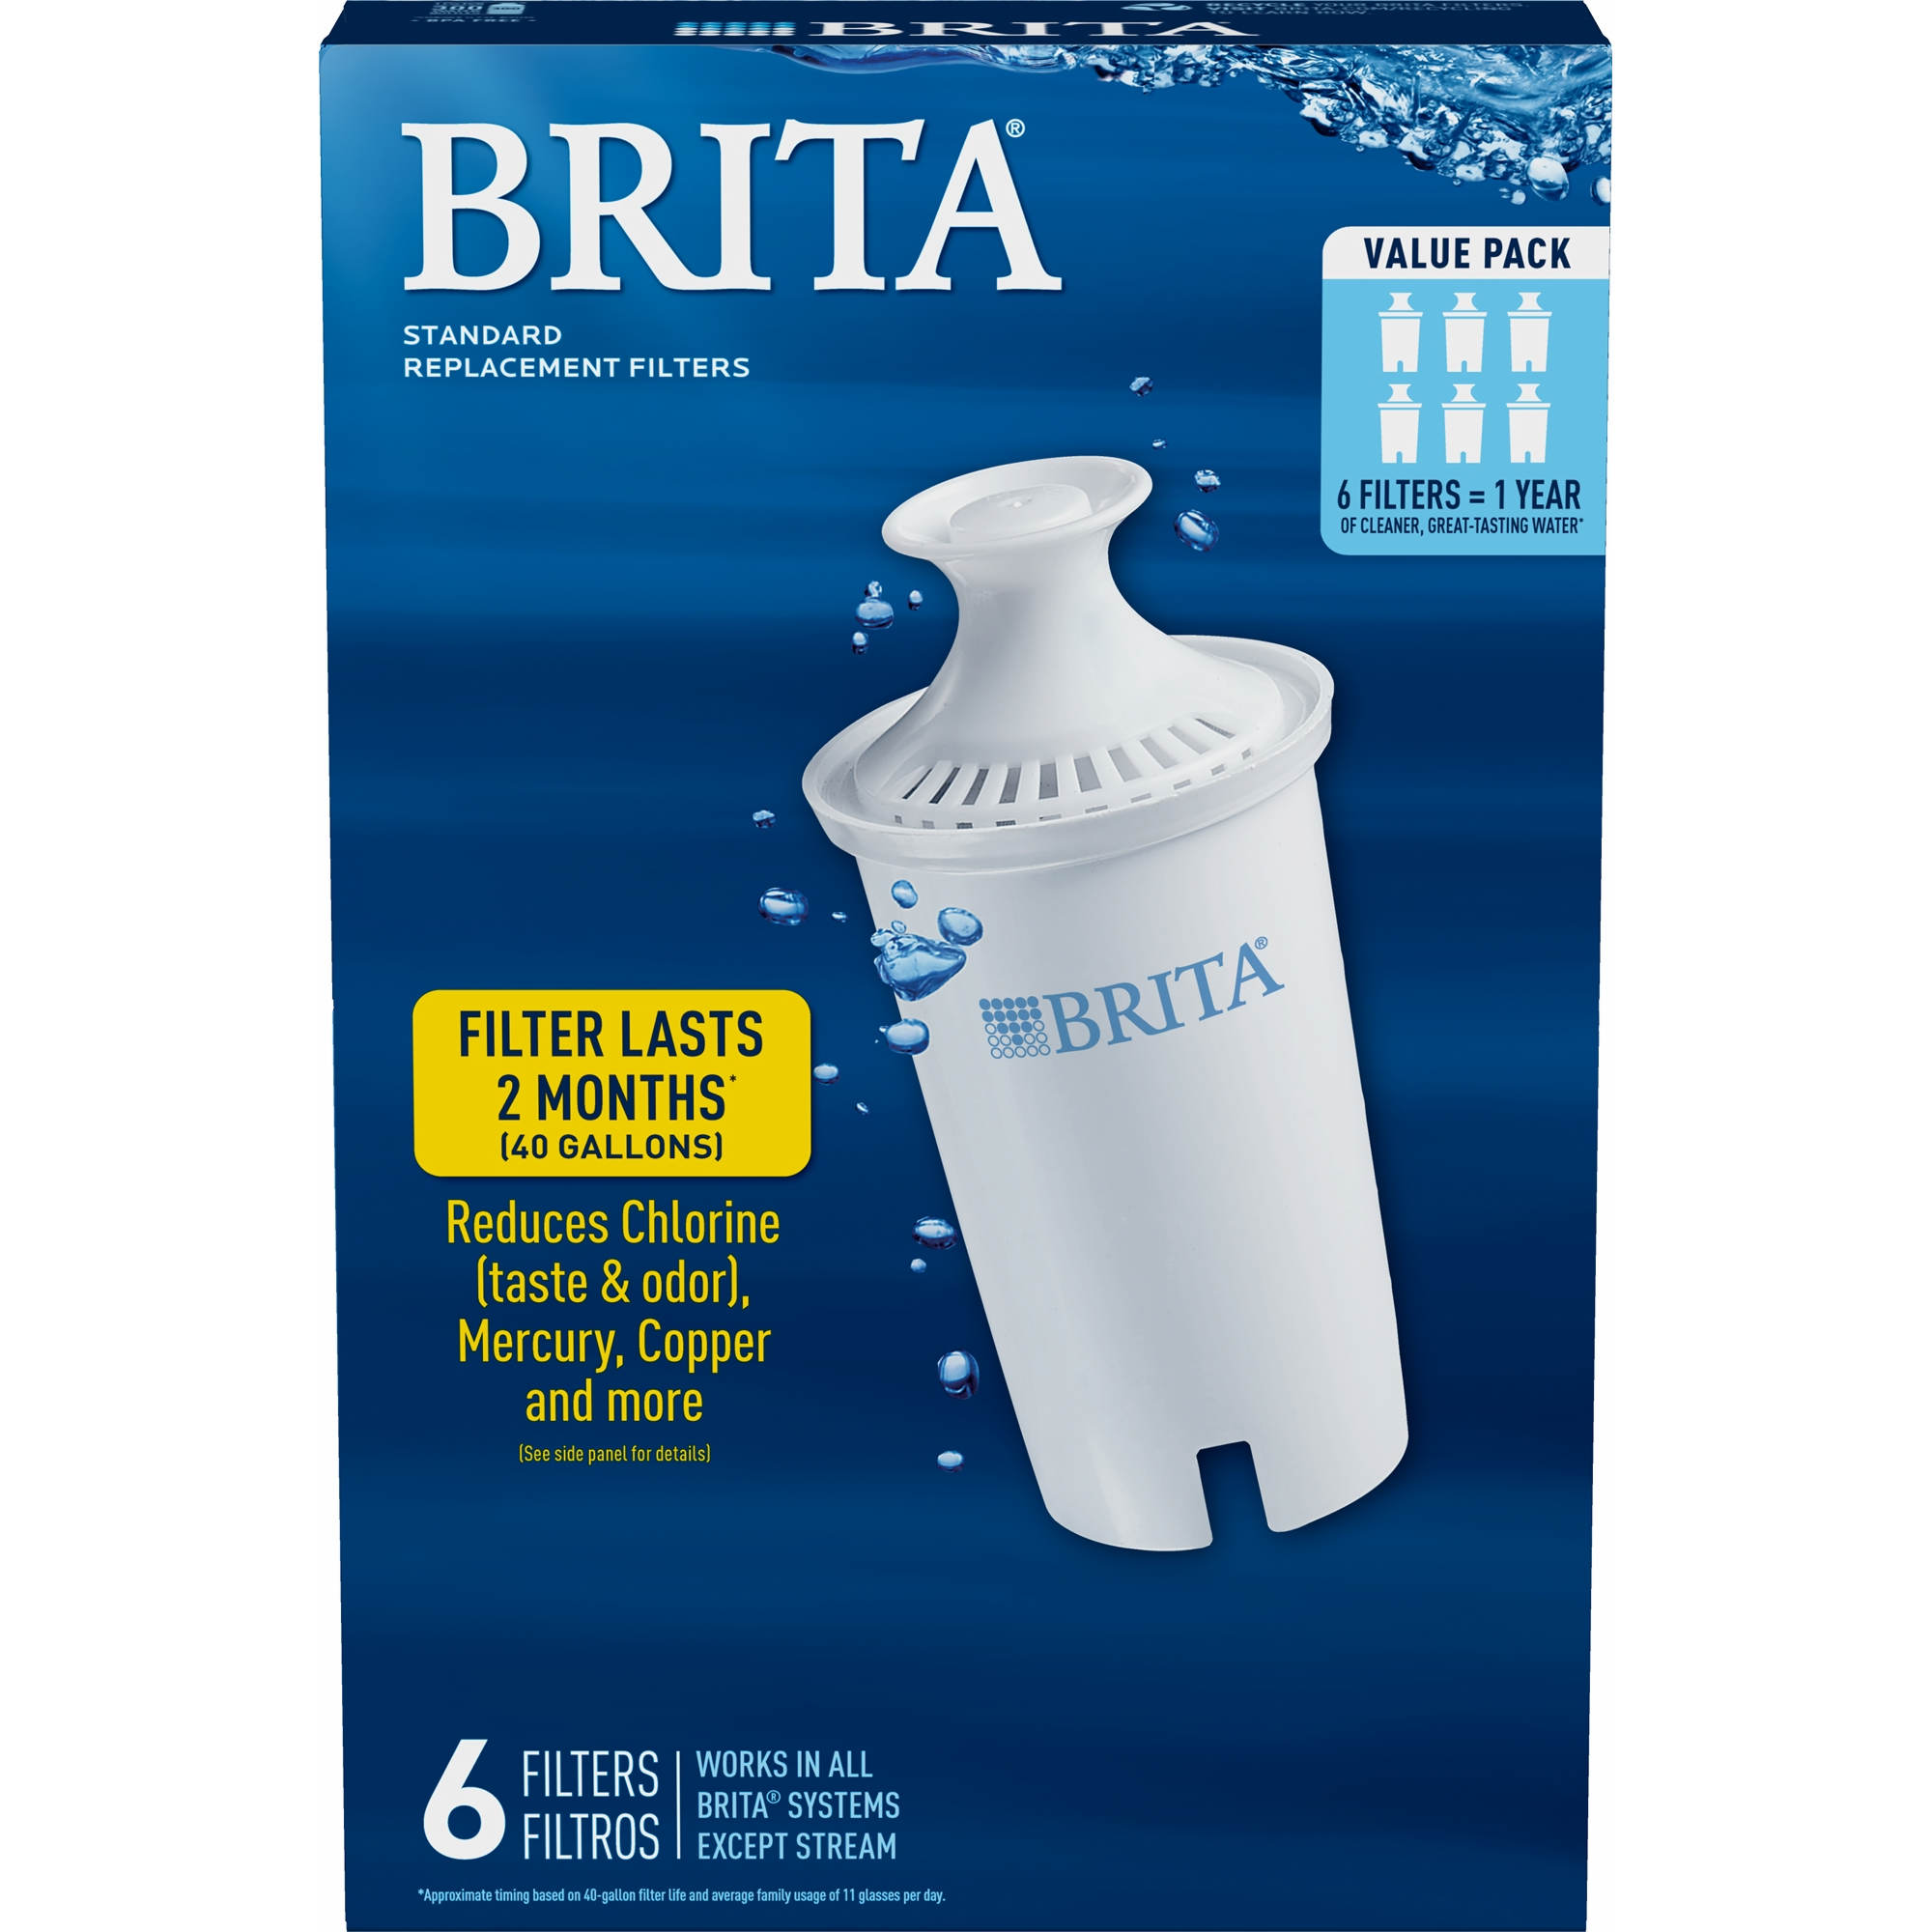 brita filter replacement instructions